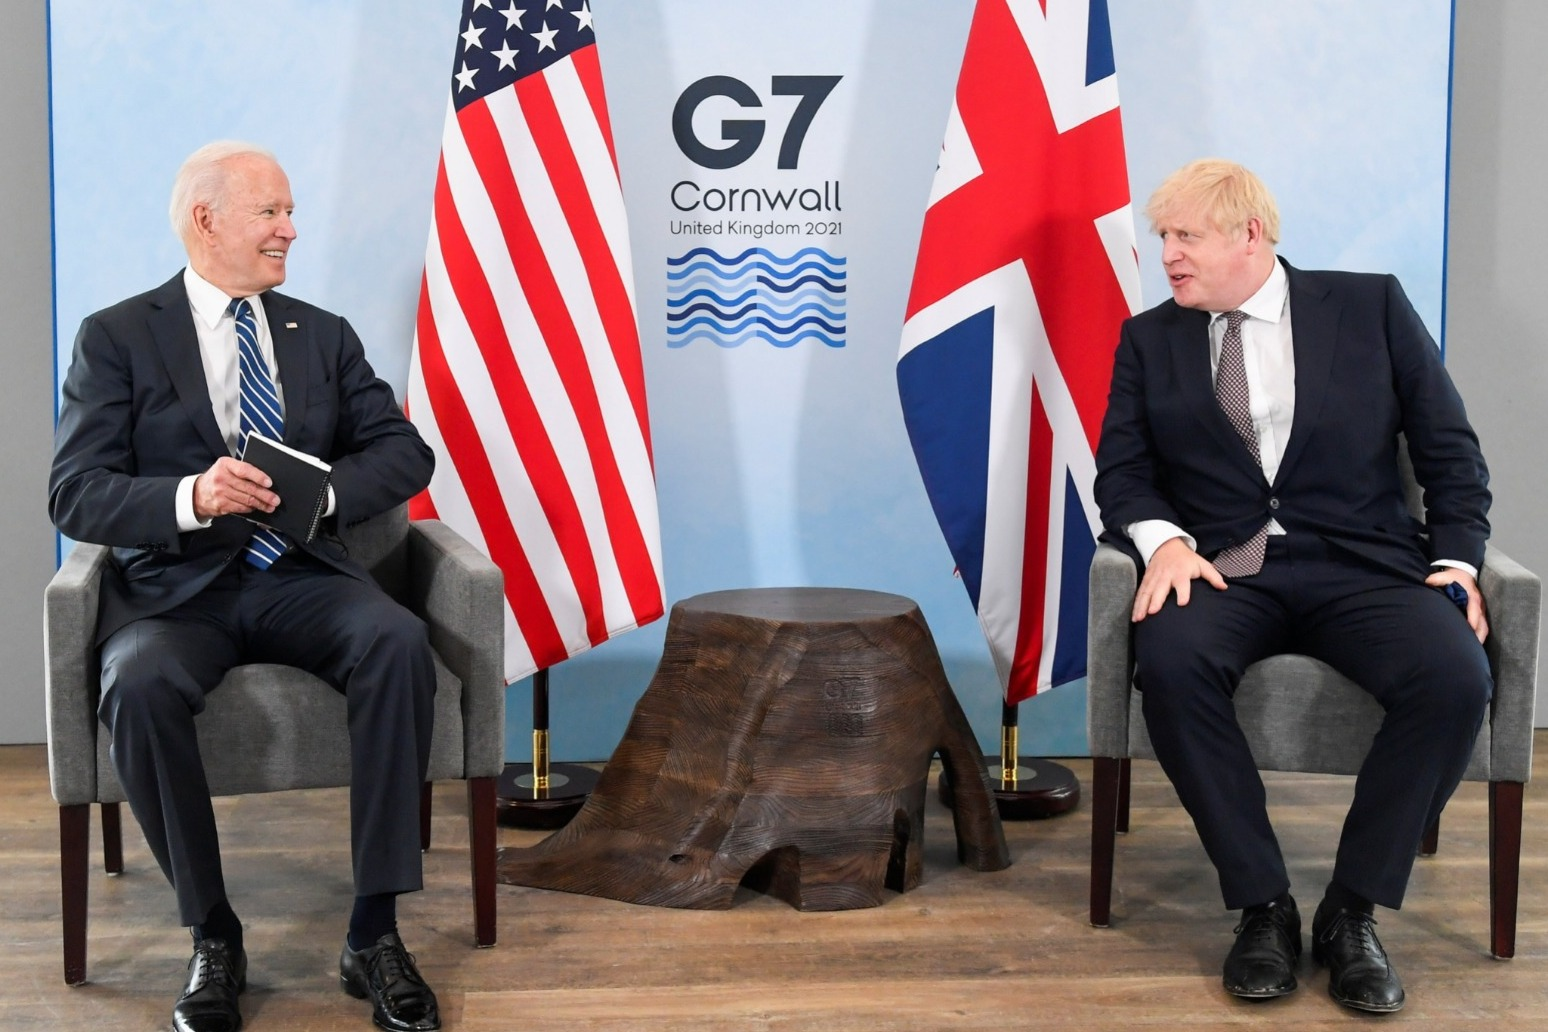 PM says US-UK trade deal is not priority for Biden ahead of White House visit